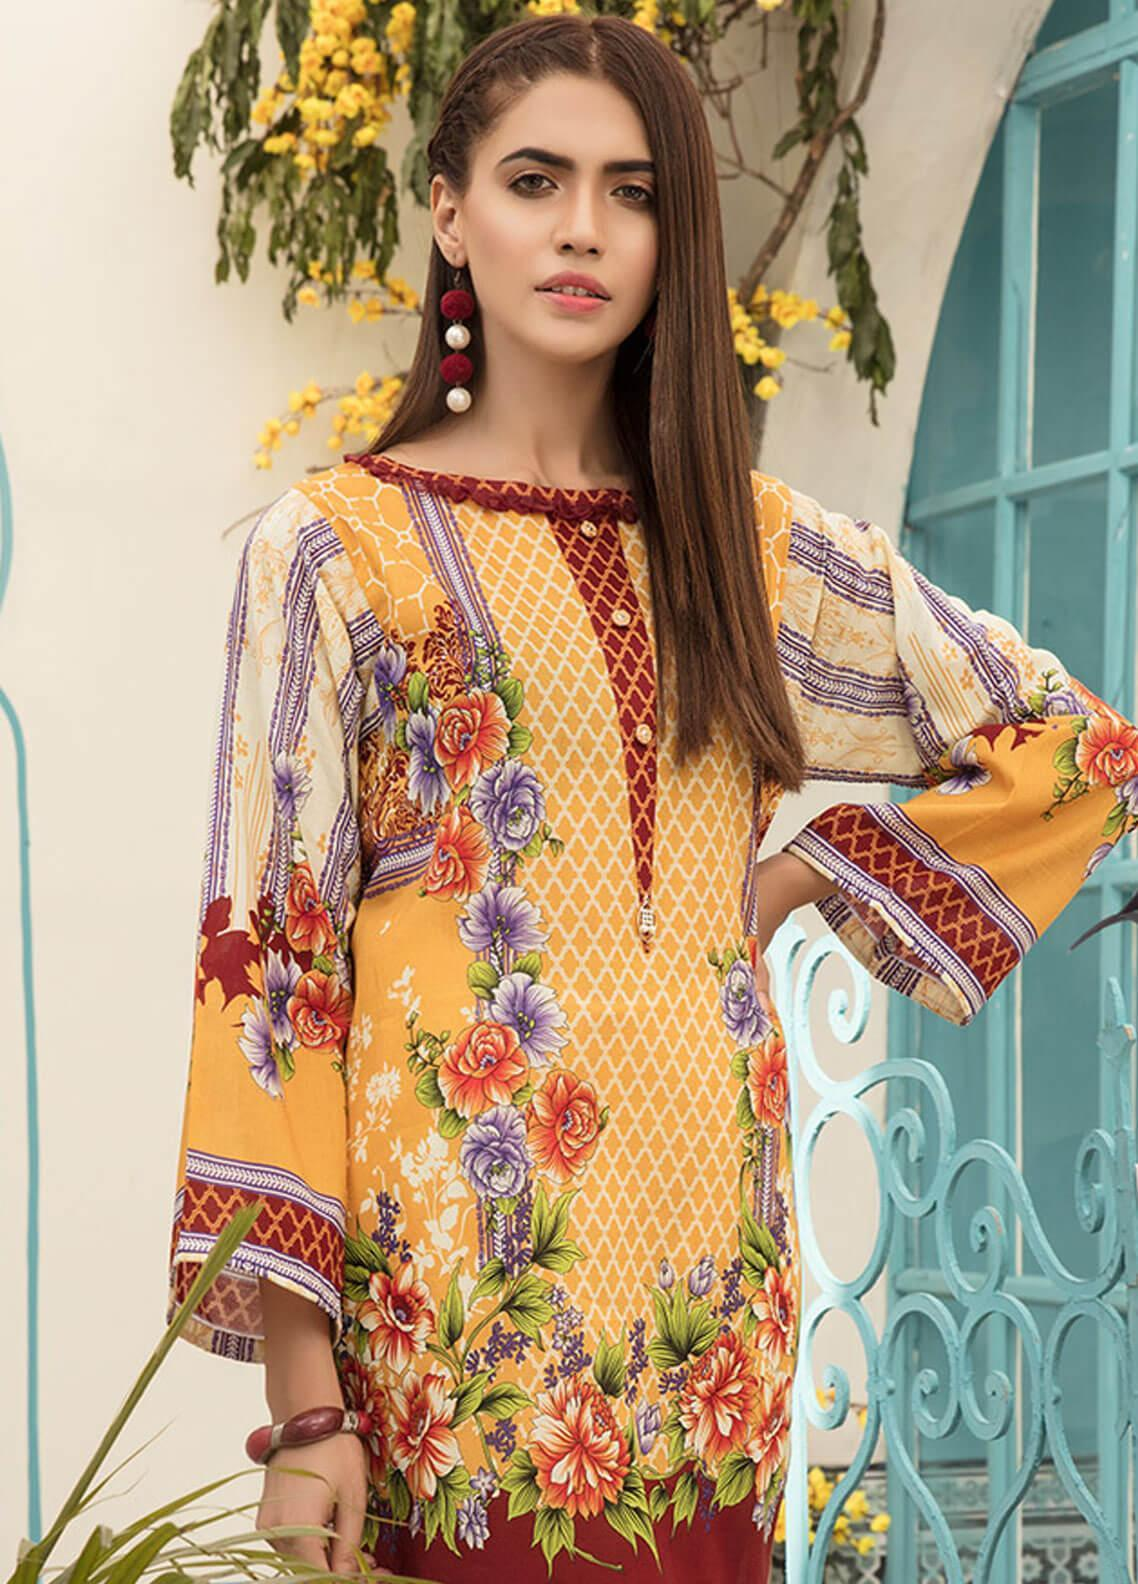 ef068b098f Sanoor by Noor Fatima Printed Lawn Unstitched Kurties SNO19F 871 - Festive  Collection. Online only